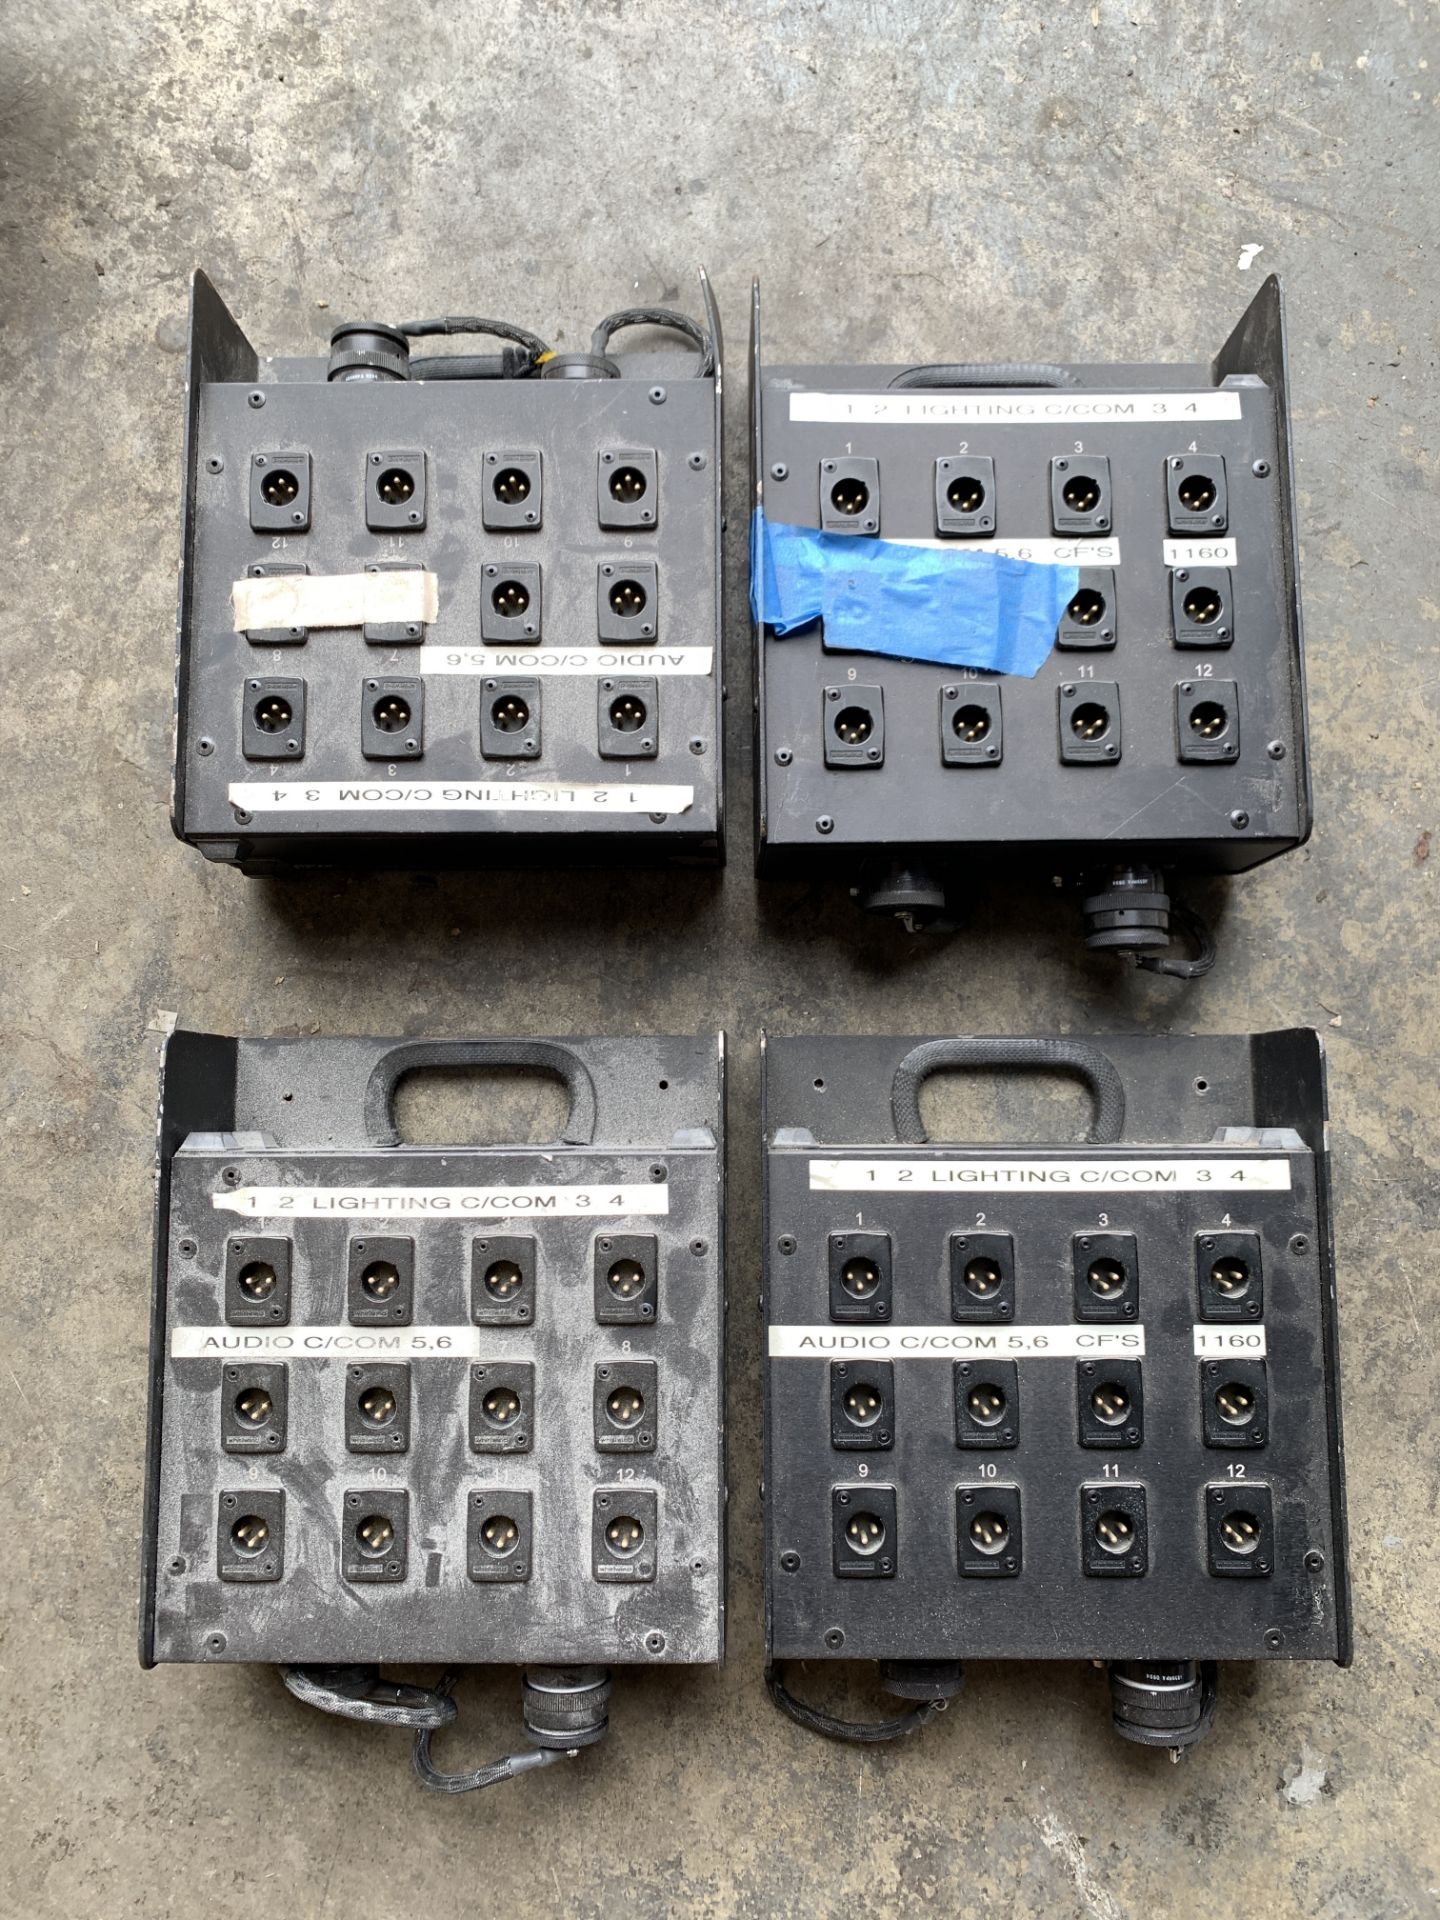 Lot 205 - 4 x Whirlwind Stage Box Units, Ship from or pick up in Los Angeles